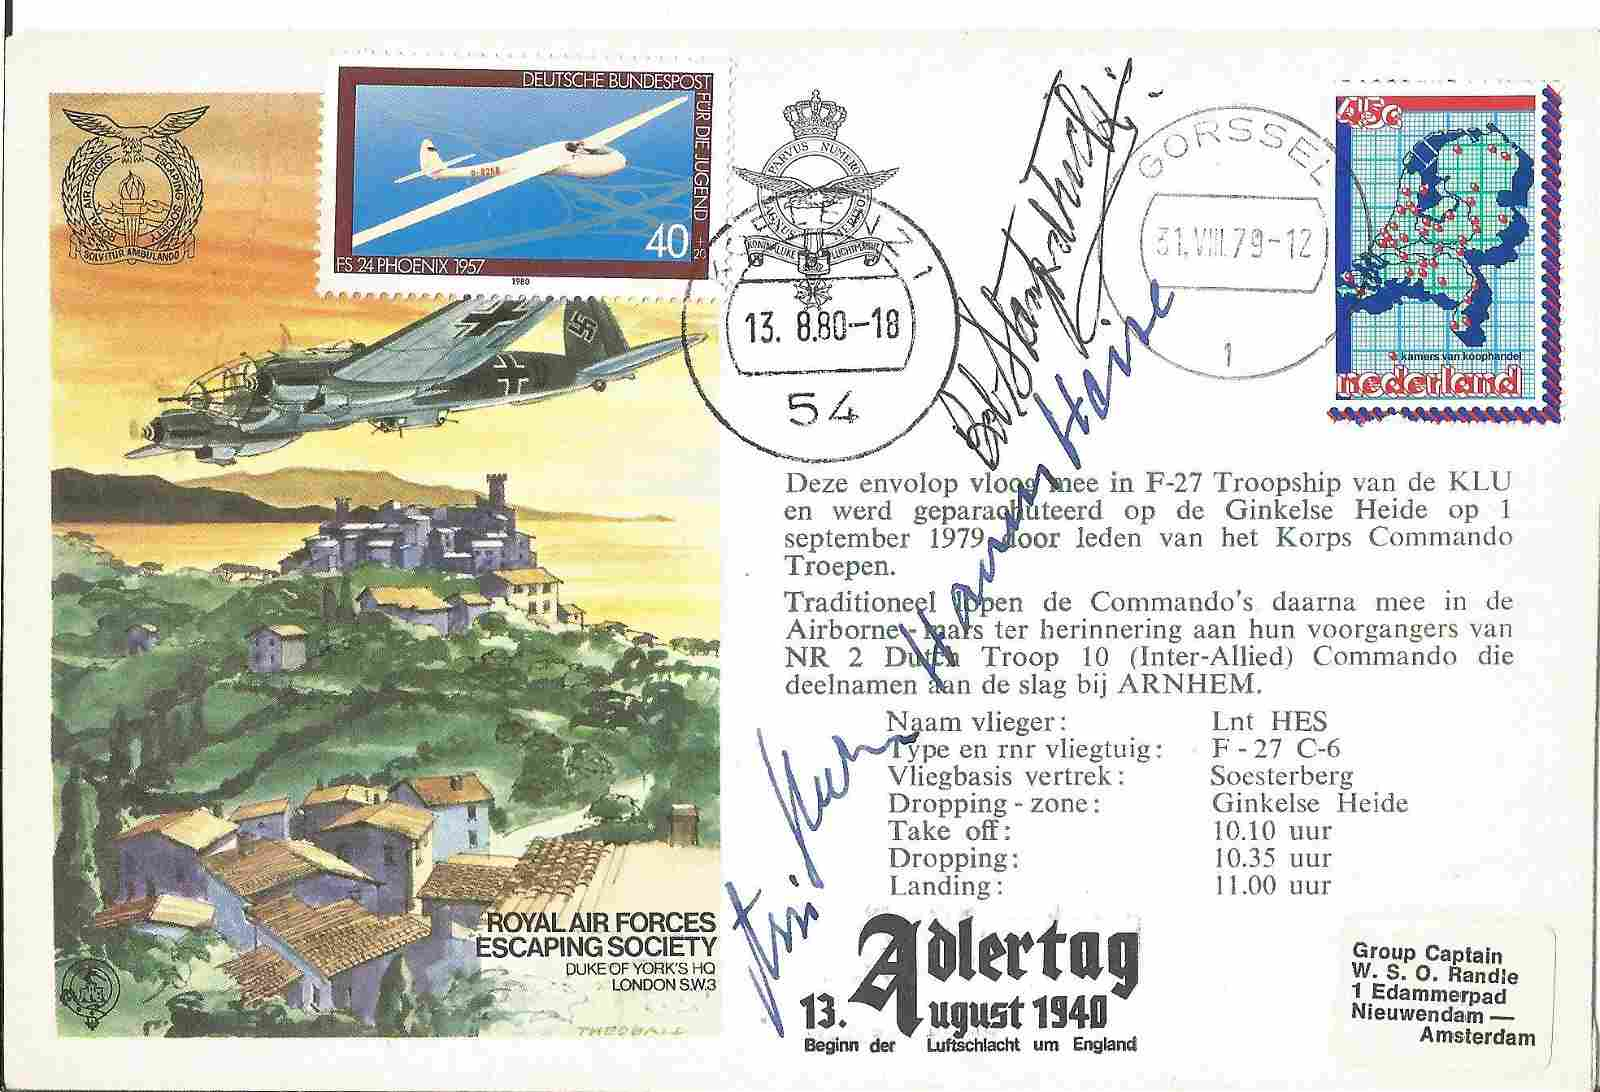 WW2 Battle of Britain aces signed rare Adlertag cover.